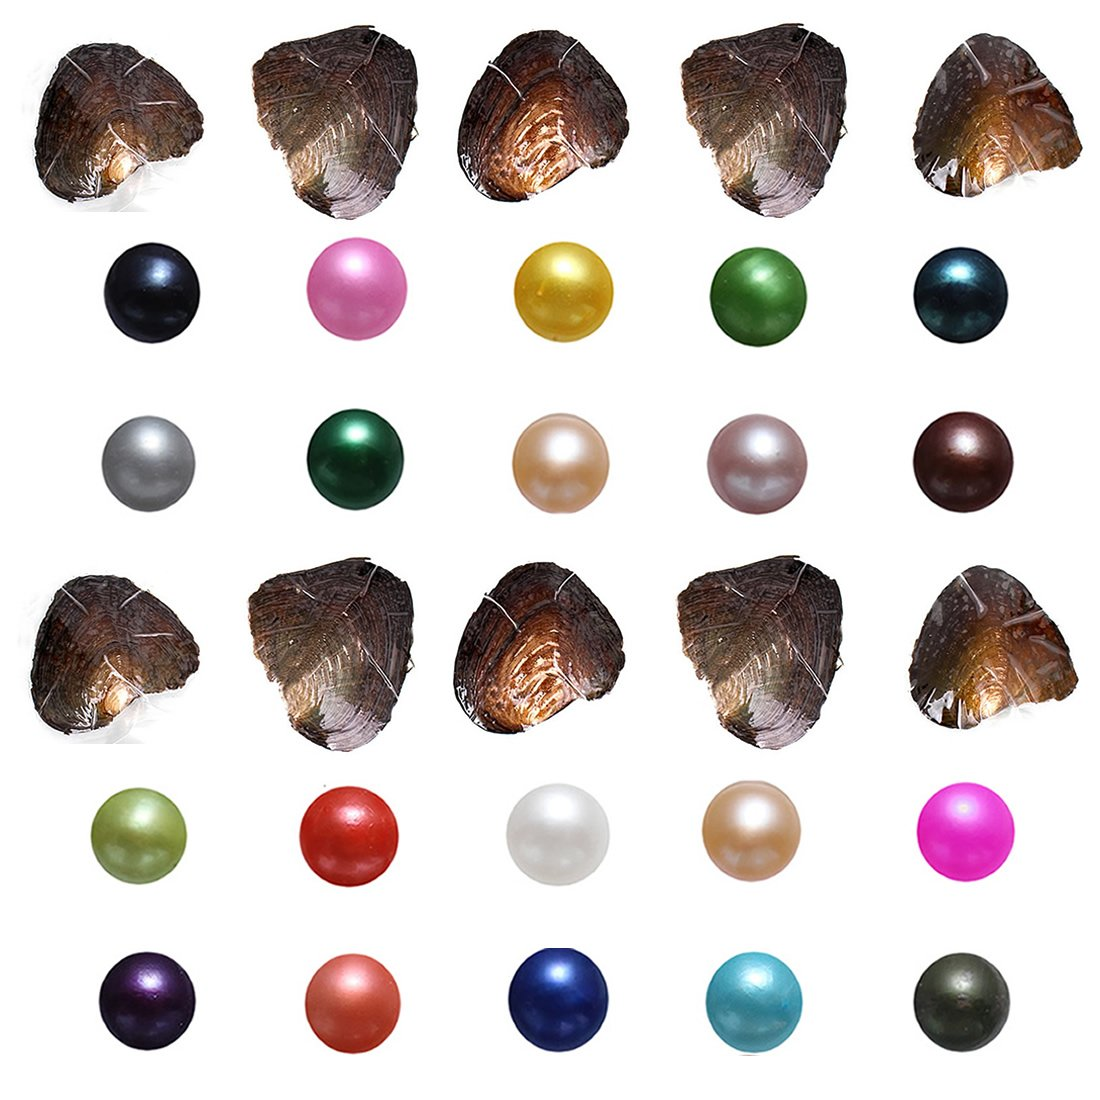 Unbrand Freshwater Cultured Pearl Oyster Round Freshwater Pearl Mixed Colors 7-8mm Oysters with Pearls Inside